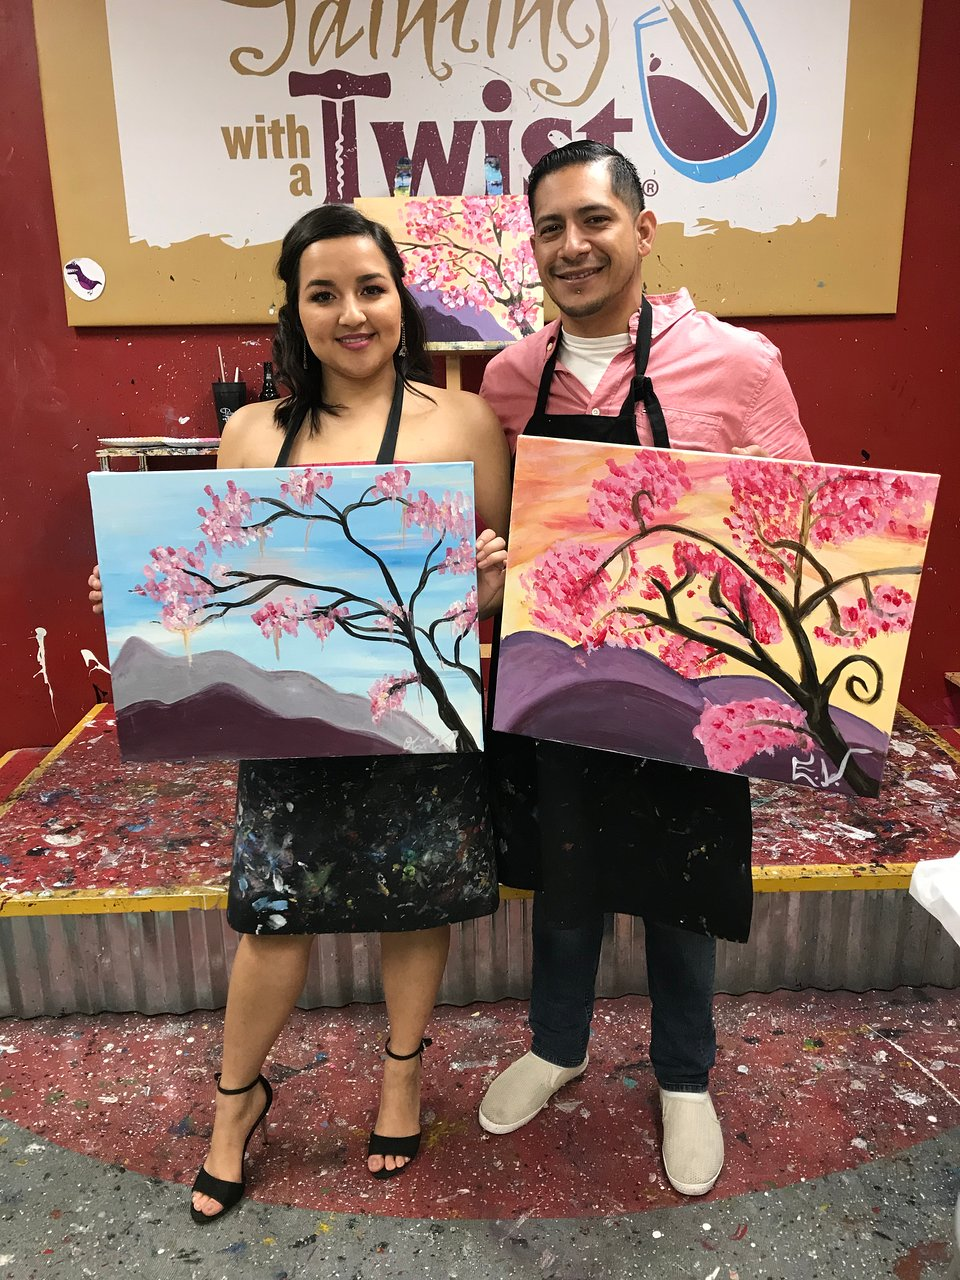 Painting With A Twist Savannah : painting, twist, savannah, Painting, Twist, (Savannah,, Omdömen, Tripadvisor